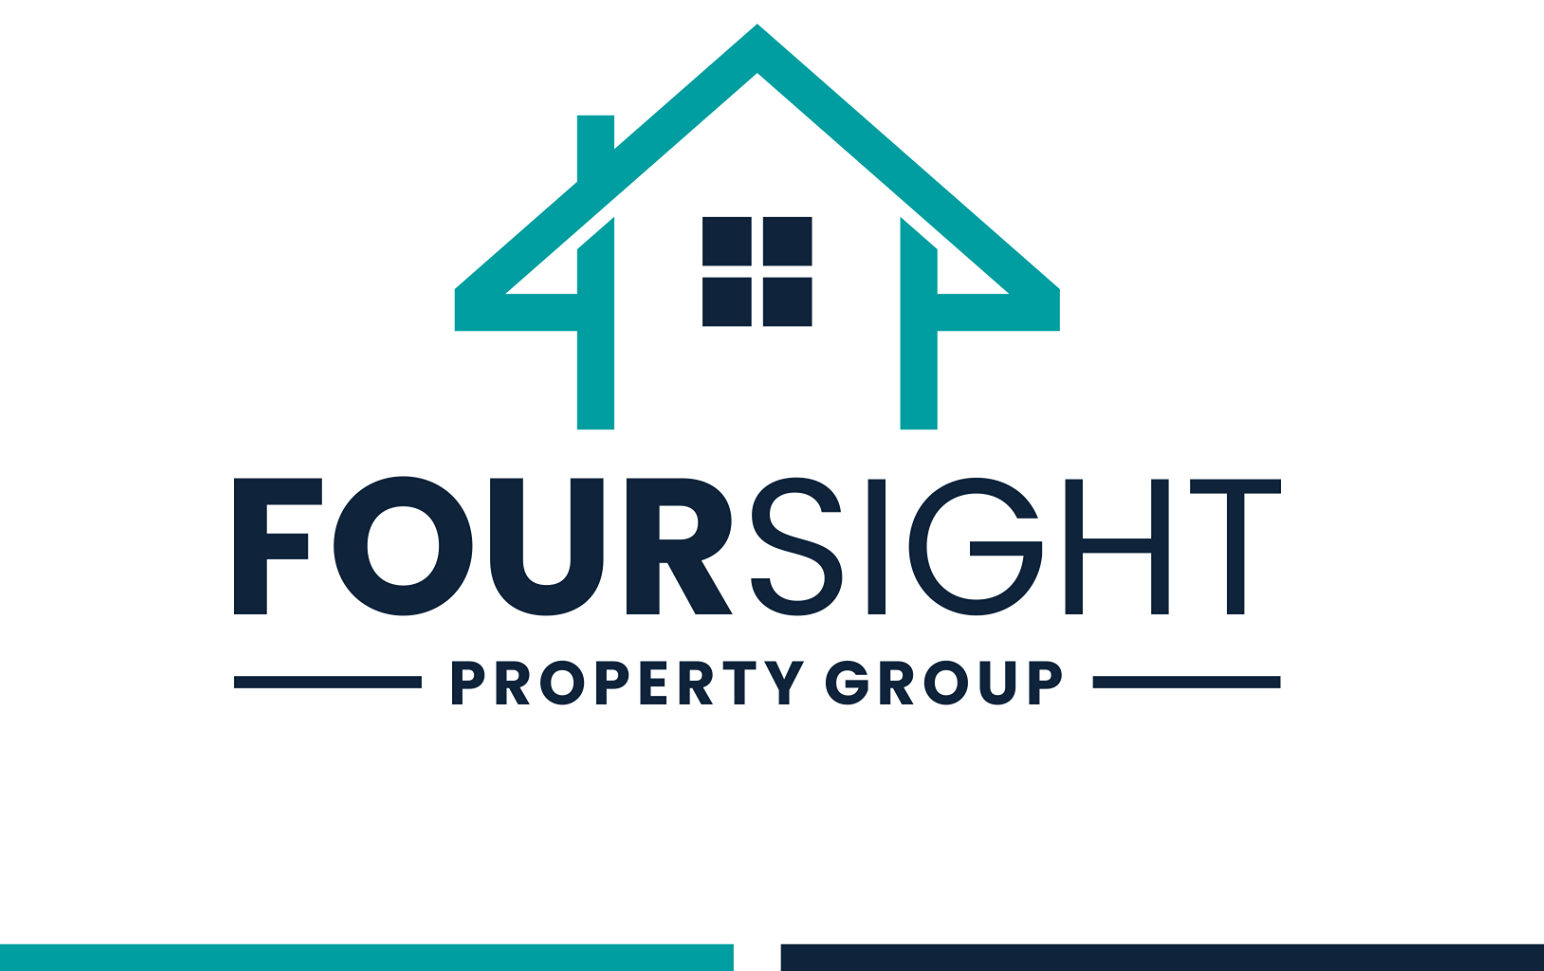 Foursight Property Group